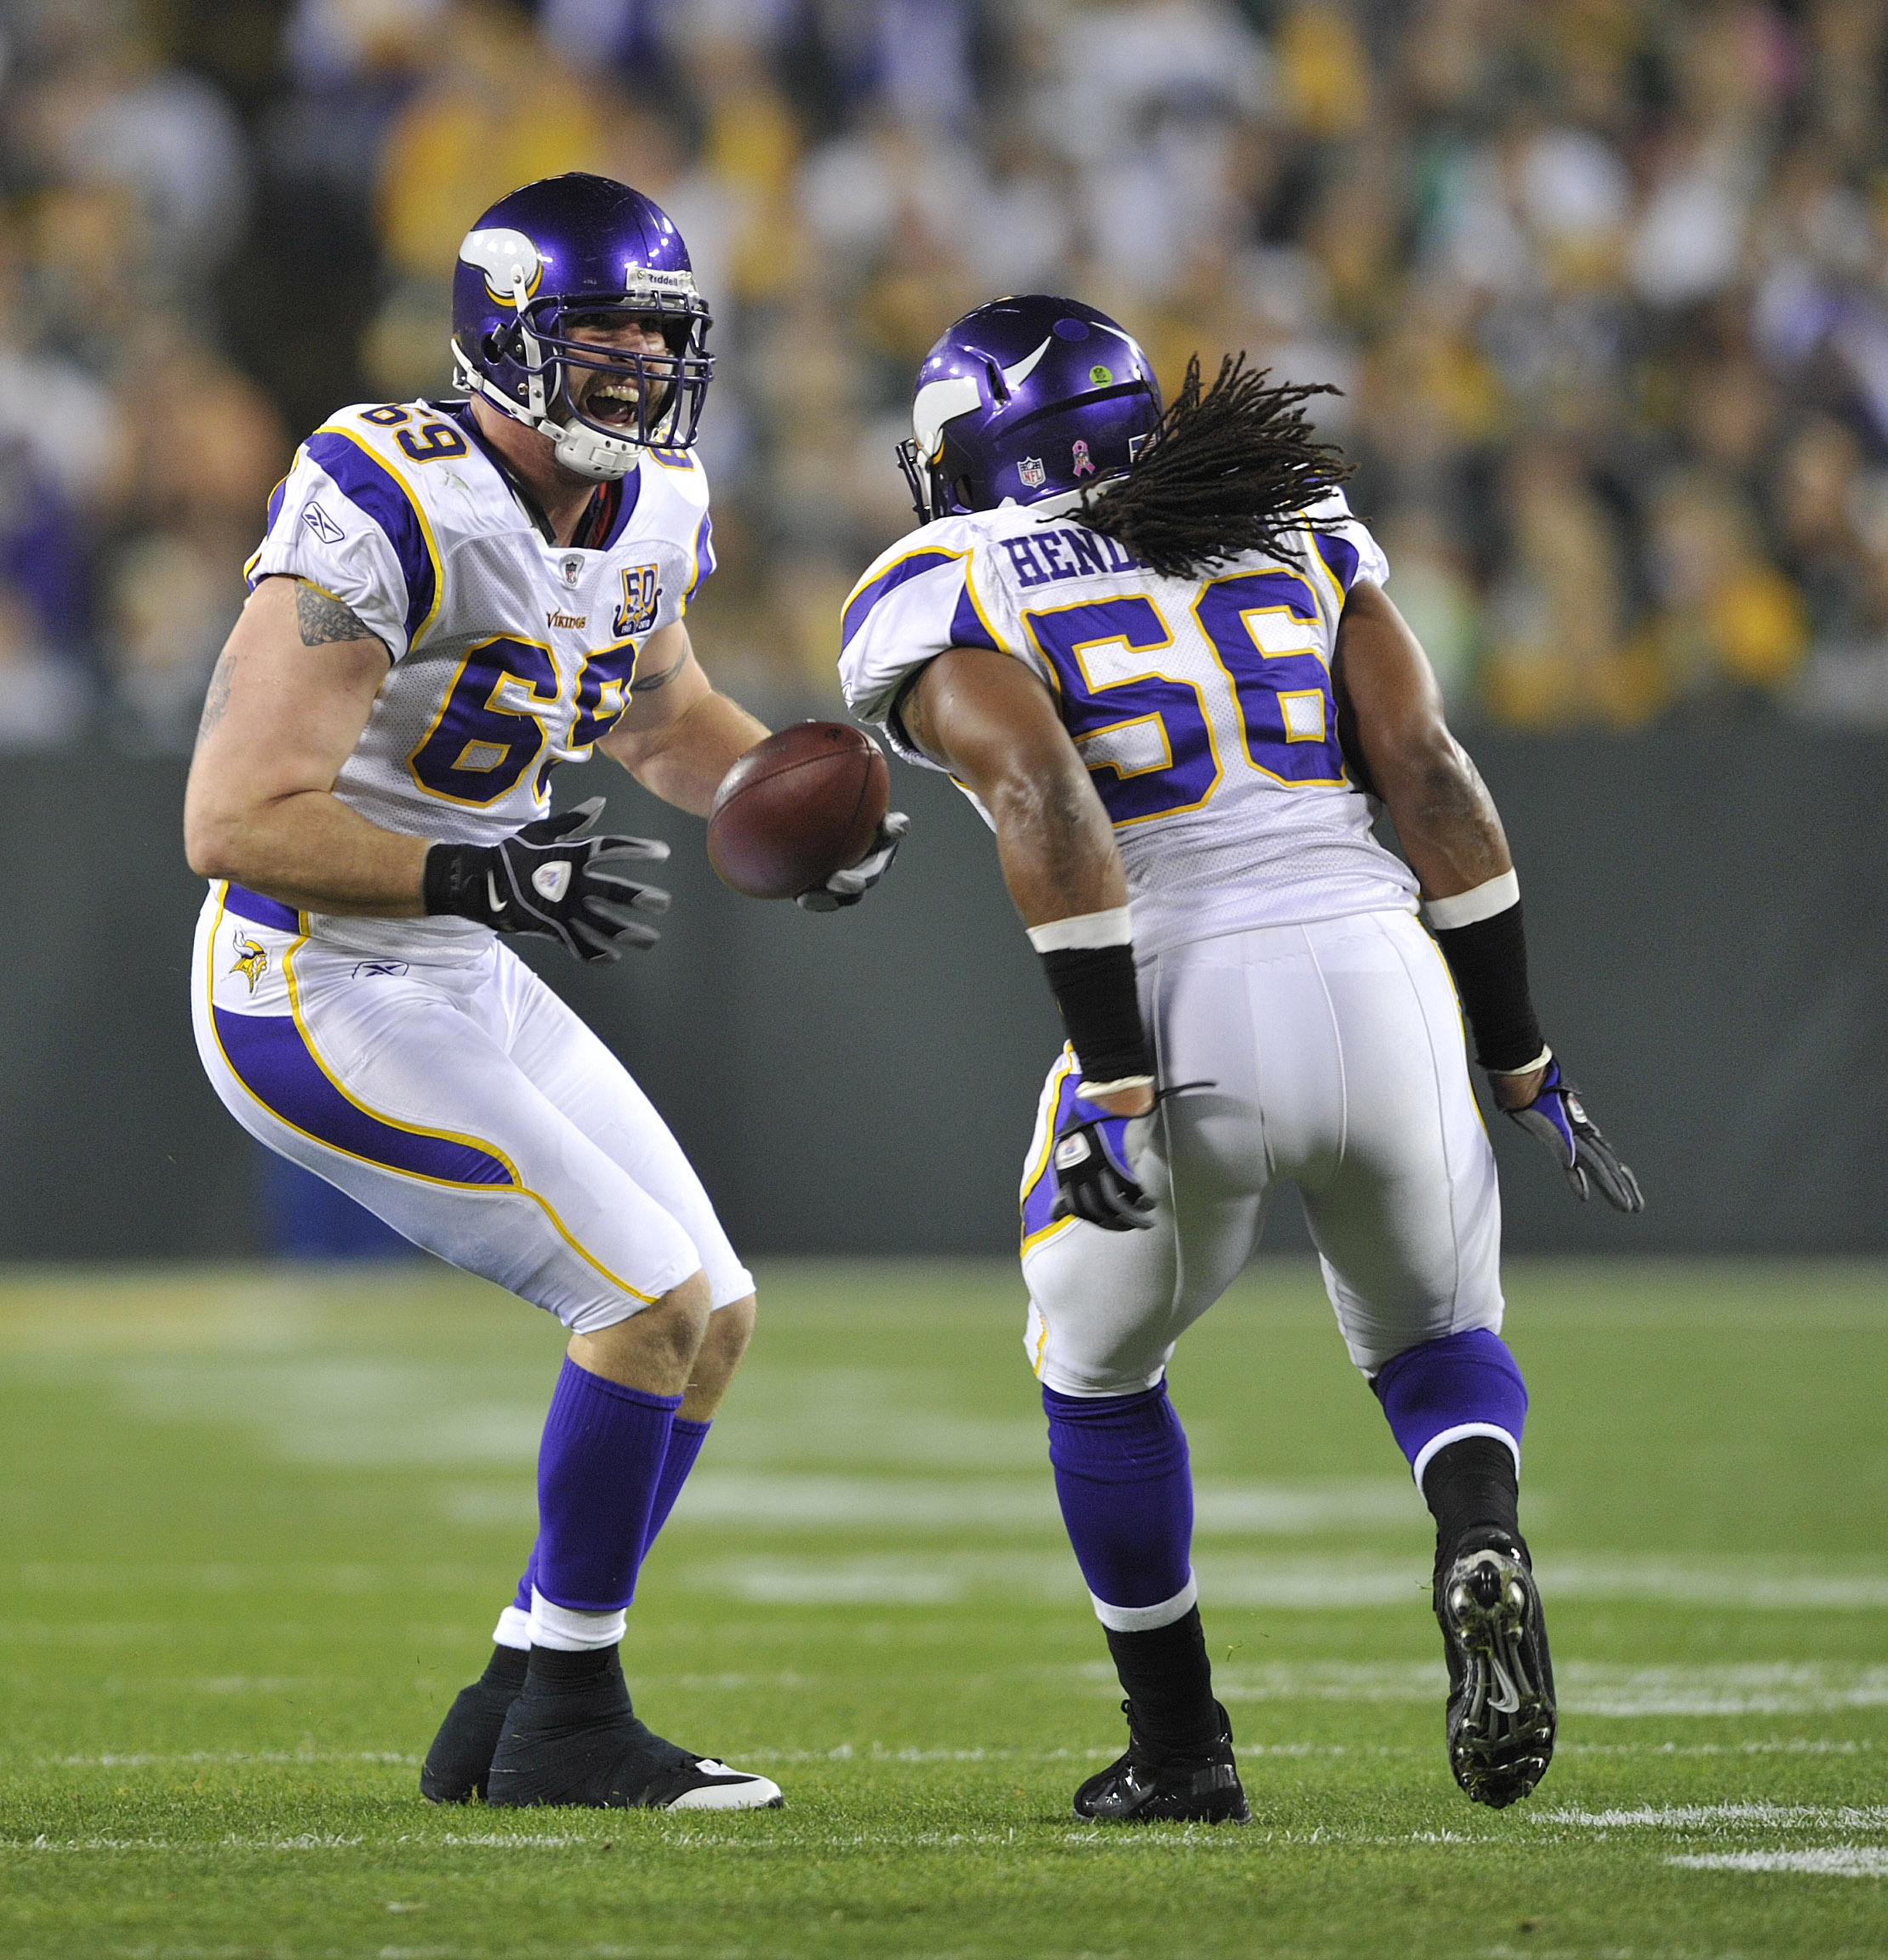 GREEN BAY, WI - OCTOBER 24:  Jared Allen #69 of the Minnesota Vikings celebrates with E.J. Henderson #56 after Allens' interception against the Green Bay Packers at Lambeau Field on October 24, 2010 in Green Bay, Wisconsin. (Photo by Jim Prisching/Getty I